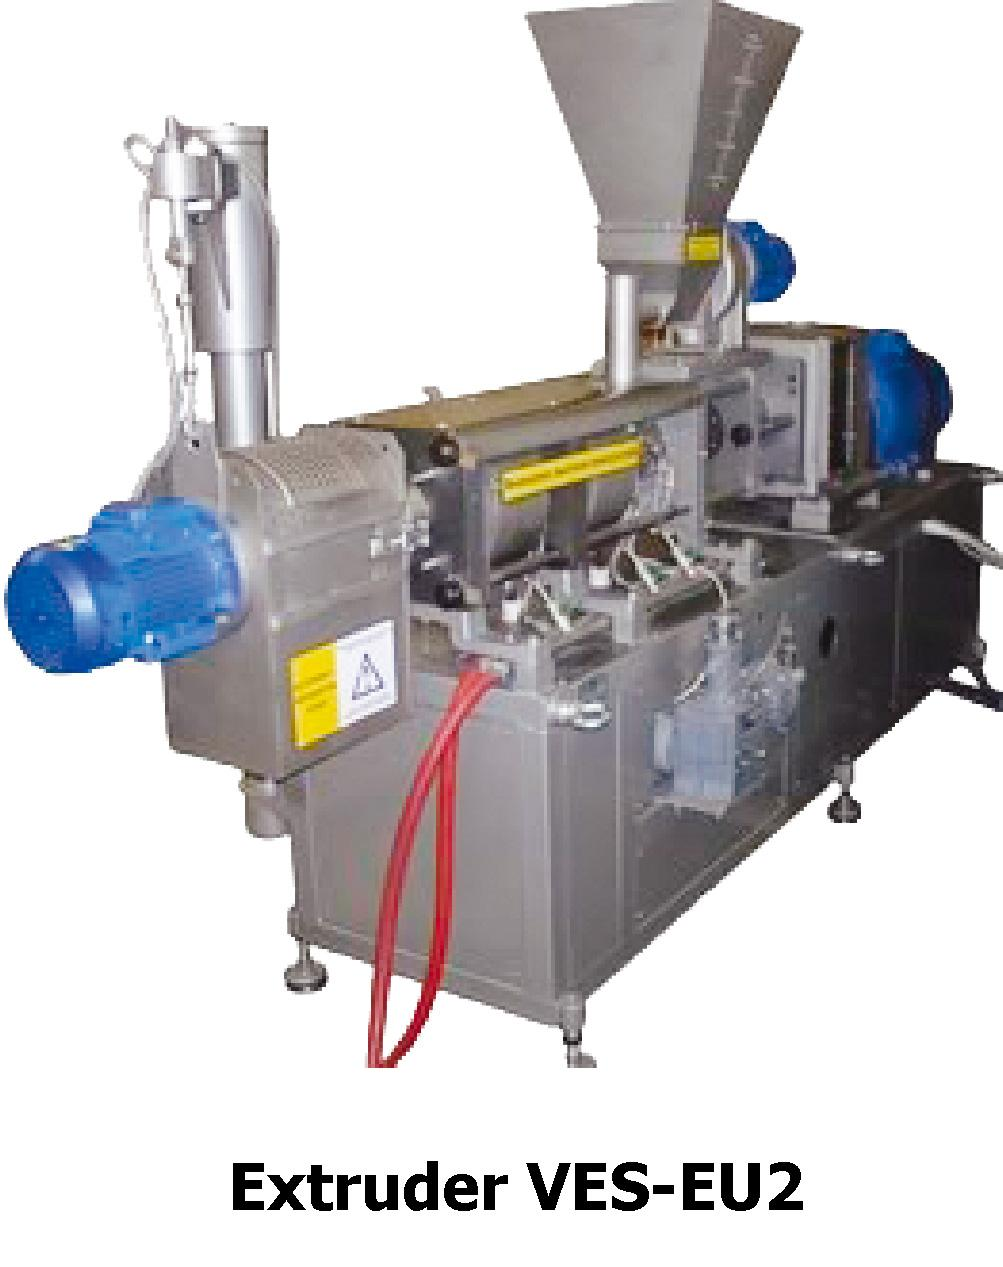 Twin Screw Extruders Market 2023 Competitions by Players, Present Situation Analysis, Development, Challenges